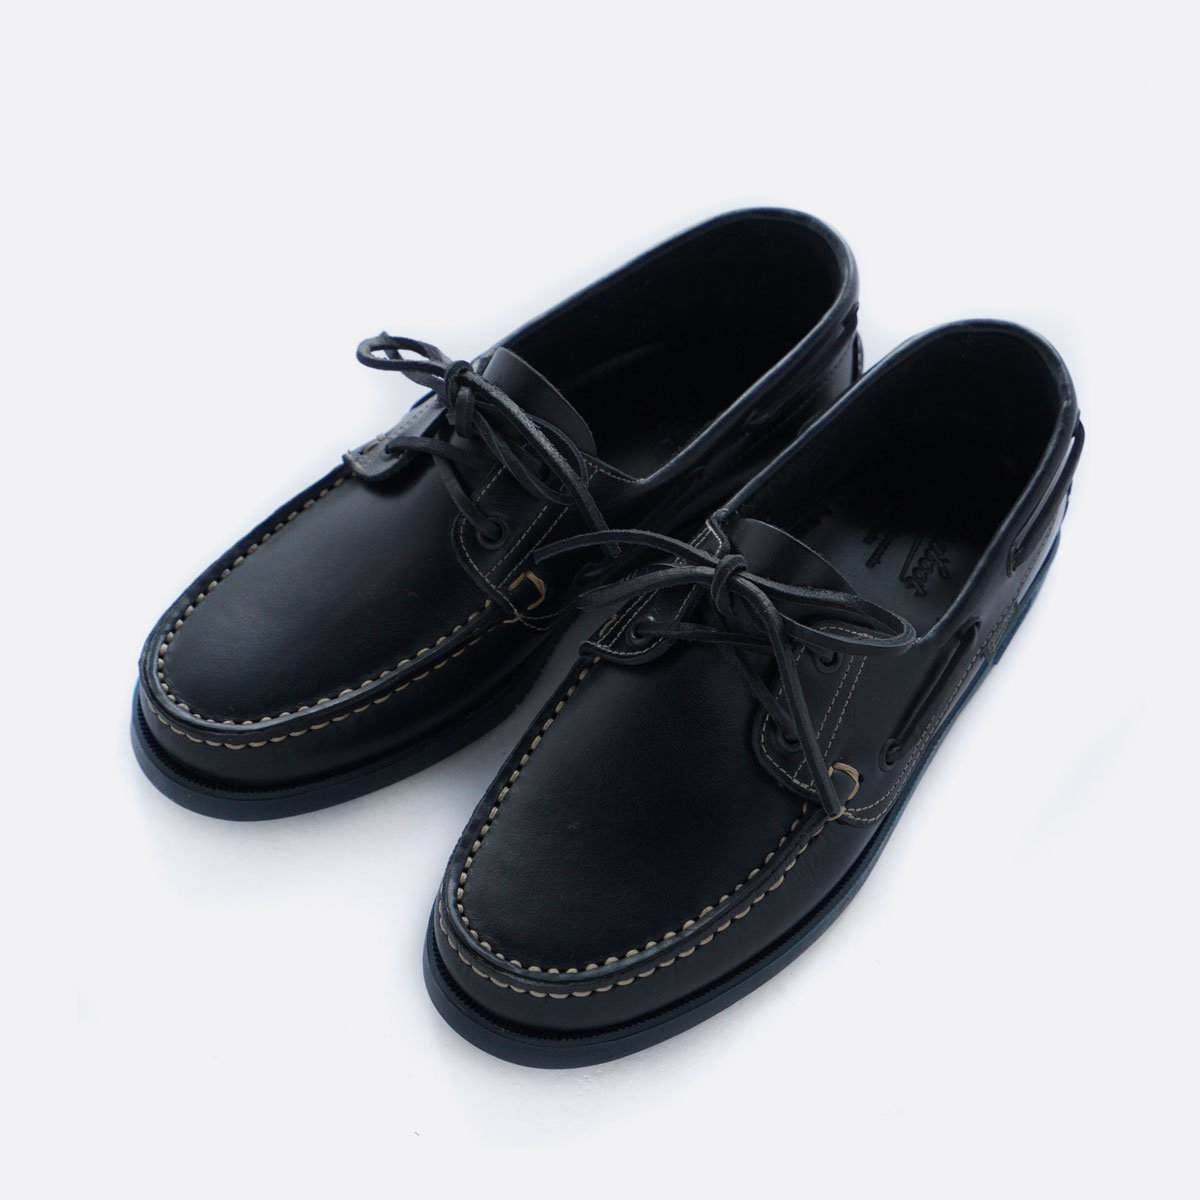 PARABOOT BARTH DECK SHOES (MARINE NAVY)3